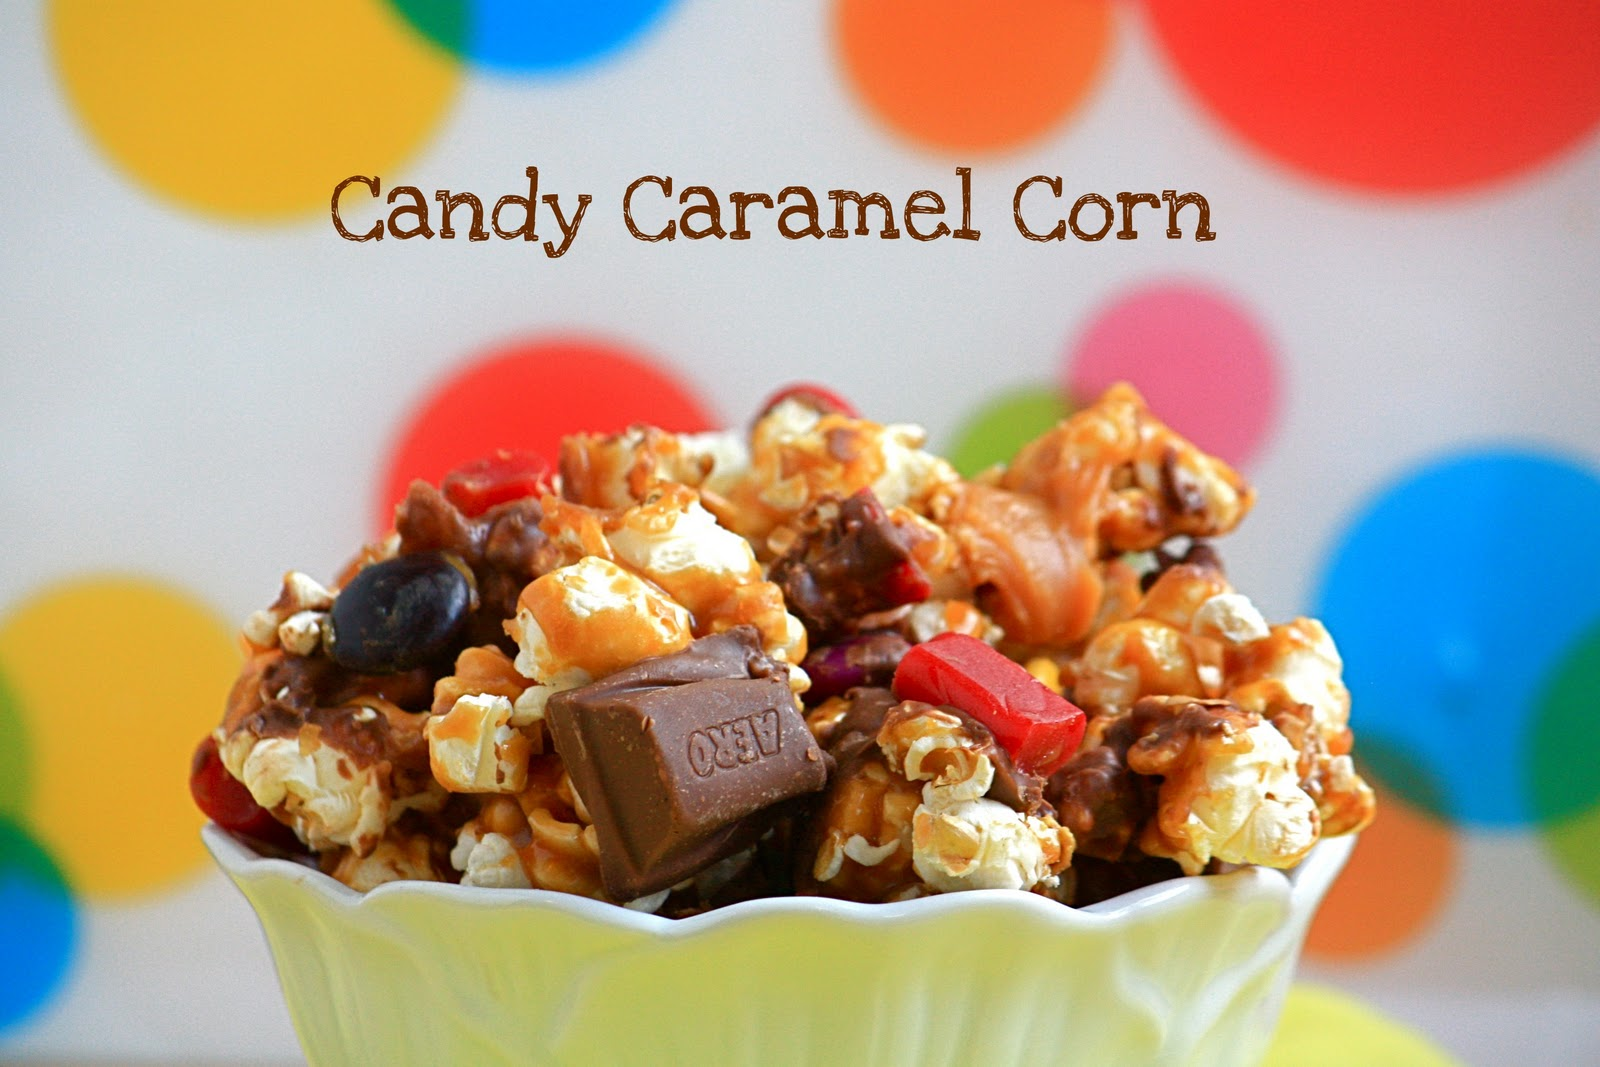 Candy Caramel Corn | Oven Adventures